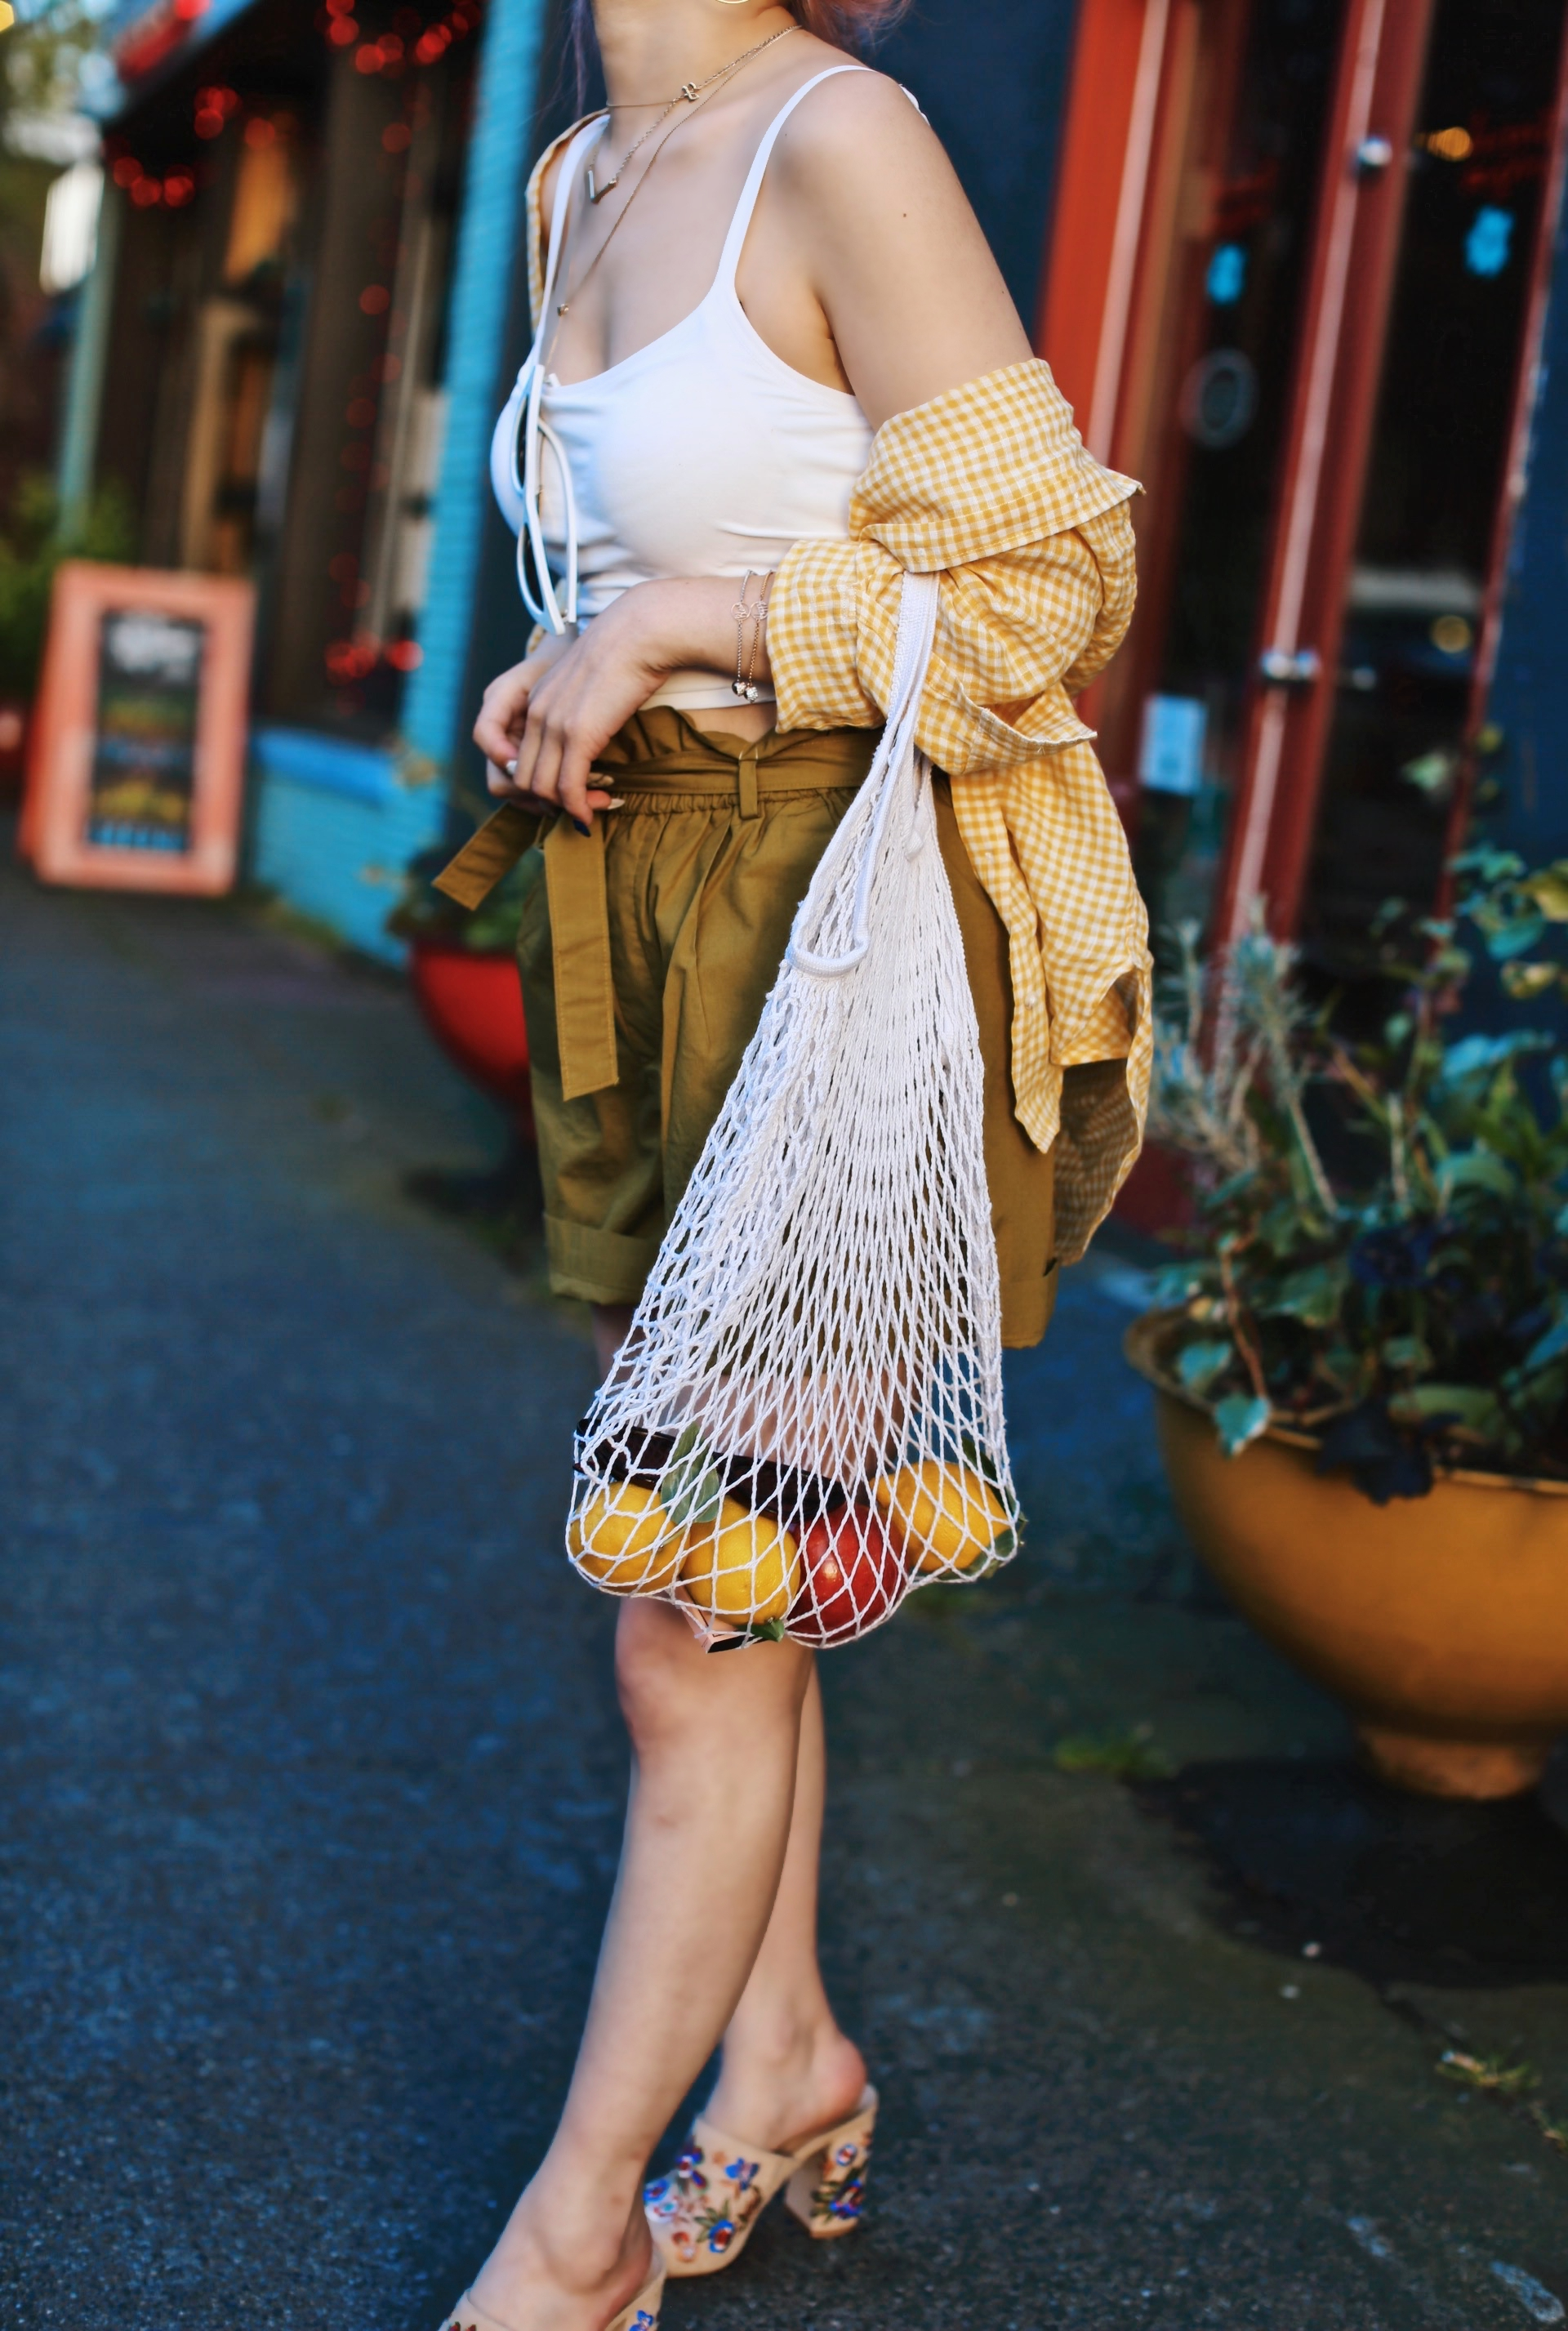 Uniqlo yellow Linen gingham shirt-Uniqlo olive paperbag shorts-Uniqlo Airism bratop-White Cat eye sunglasses ZERO UV- Pipe + Row White net bag-Vintage scarf bun hairstyle-ALDO Embroidered Nude mules-Aika's Love Closet-seattle fashion style blogger-Japanese-pink hair-smiling-spring fashion 11